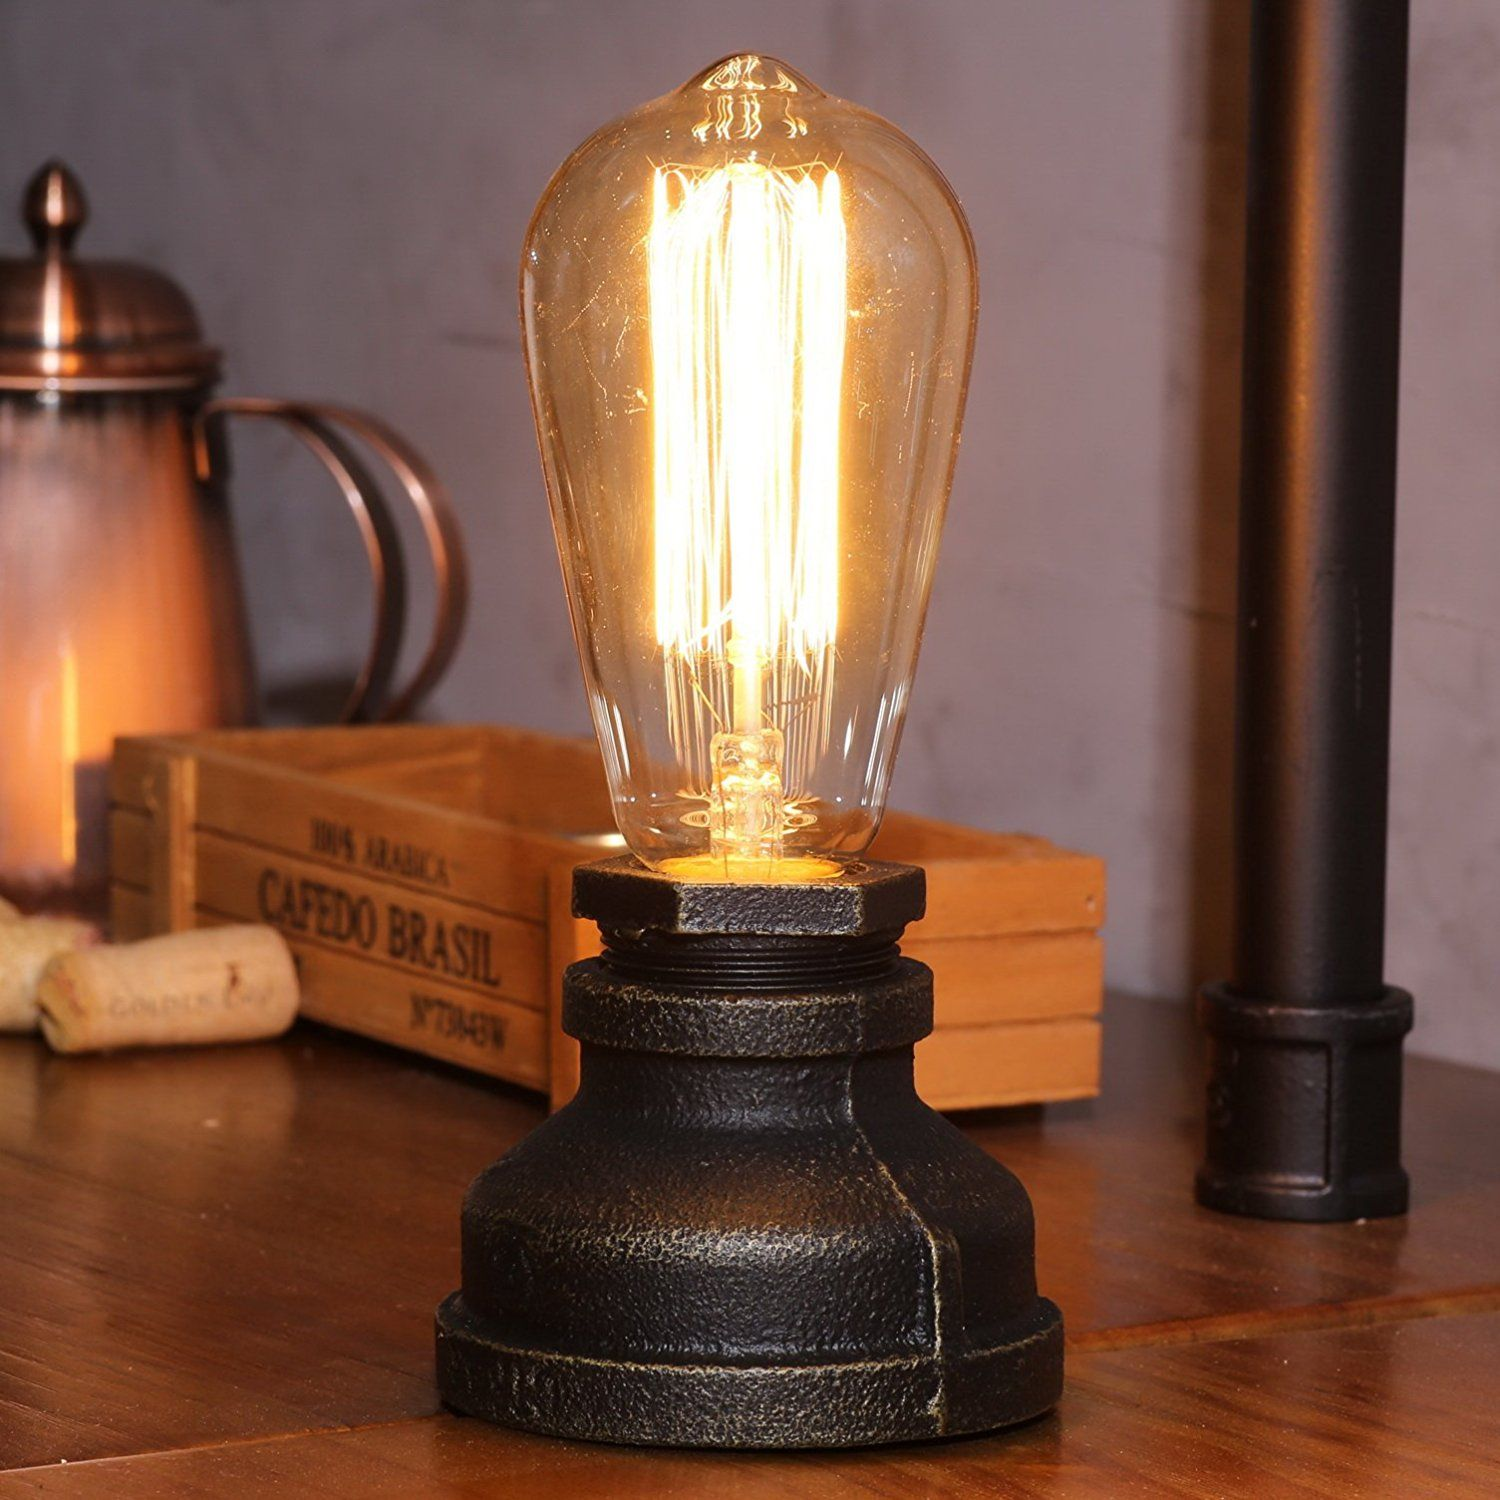 Amazon Com Kiven Steampunk Table Lamp Ul Certification Button Switch Cord Vintage Style Desk Light E Steampunk Lamp Steampunk Table Lamp Industrial Table Lamp